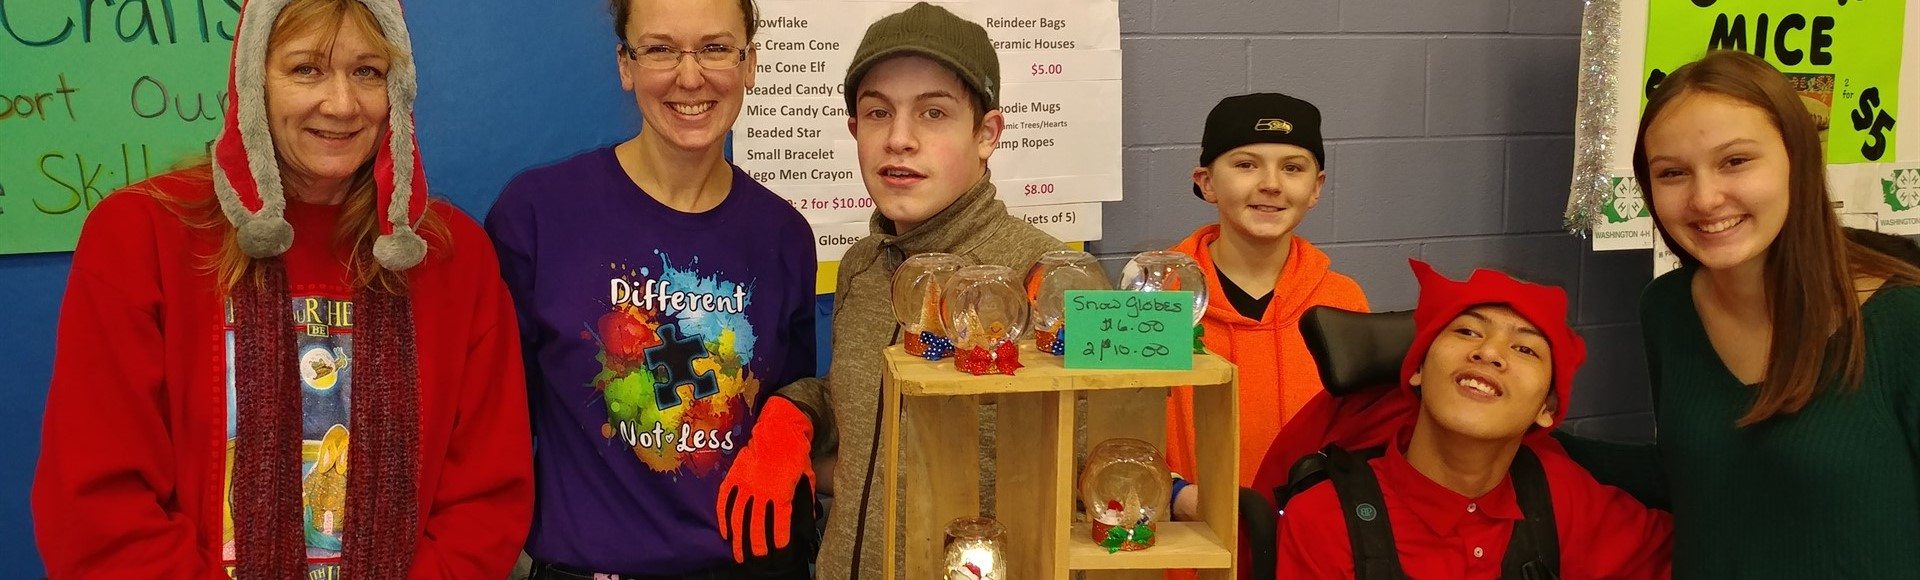 Life Skills Class selling items at Chimacum Arts & Crafts Fair December 2018